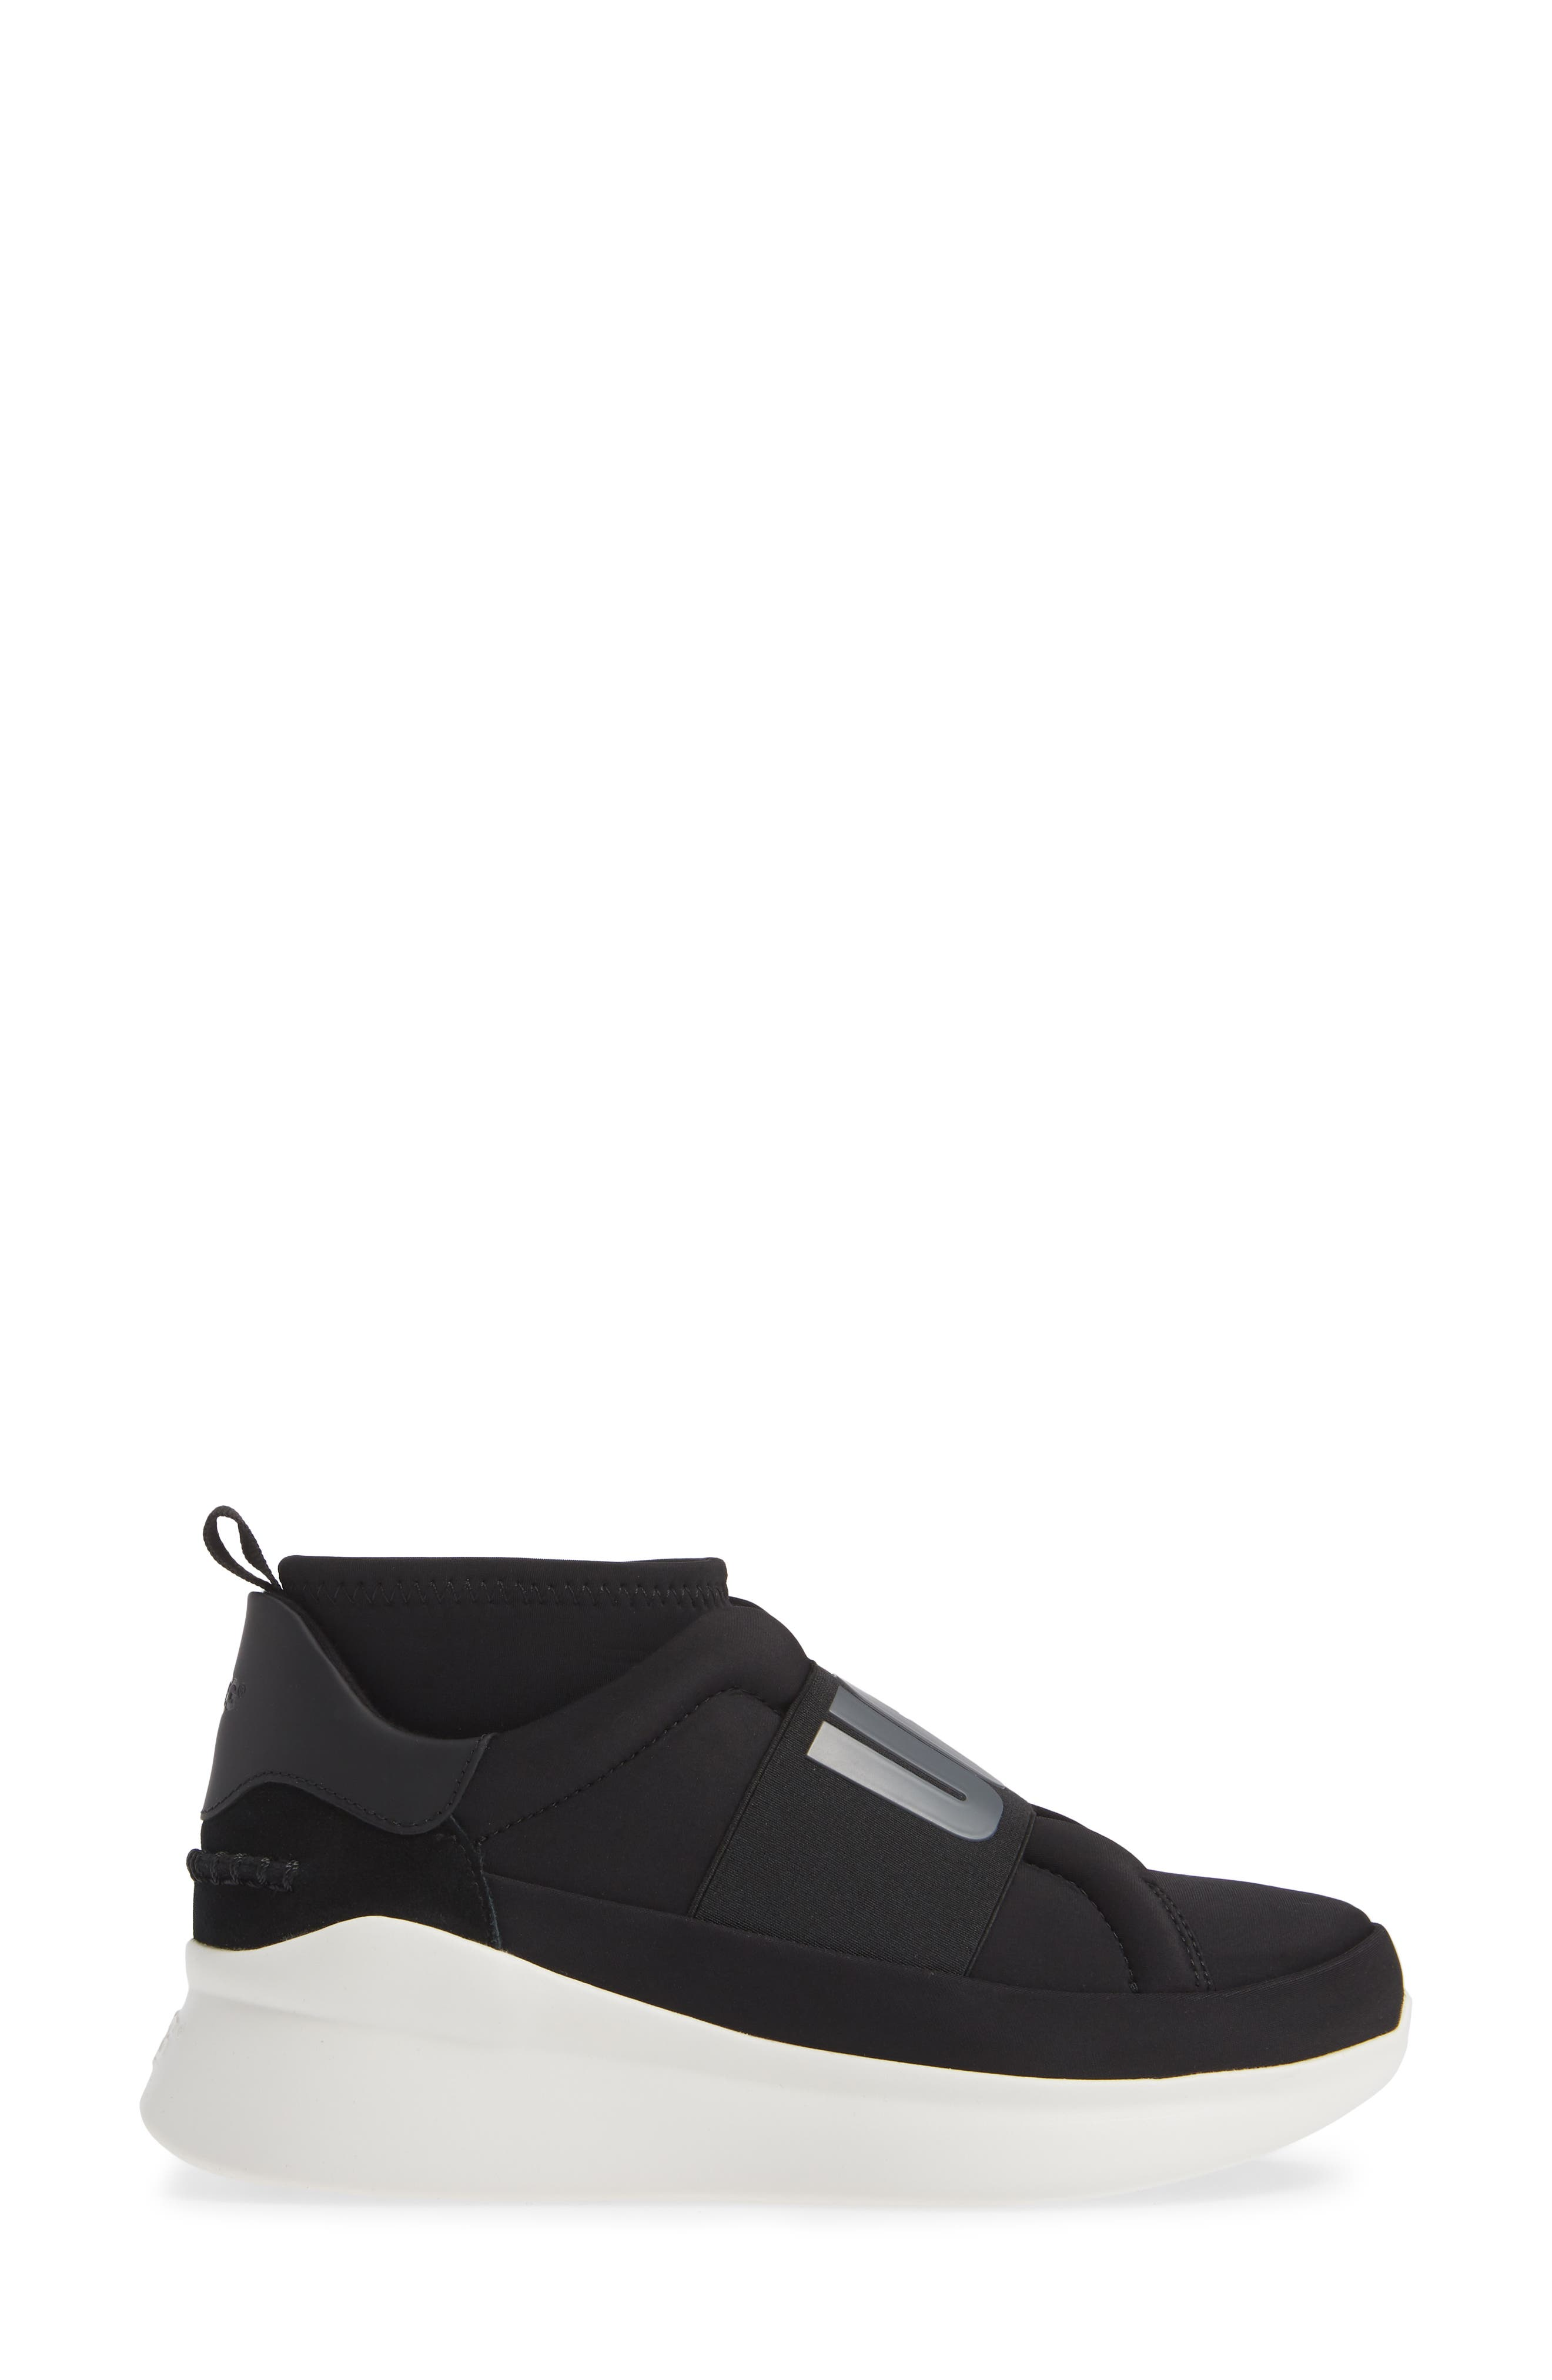 UGG<SUP>®</SUP>, Neutra Sock Sneaker, Alternate thumbnail 3, color, BLACK